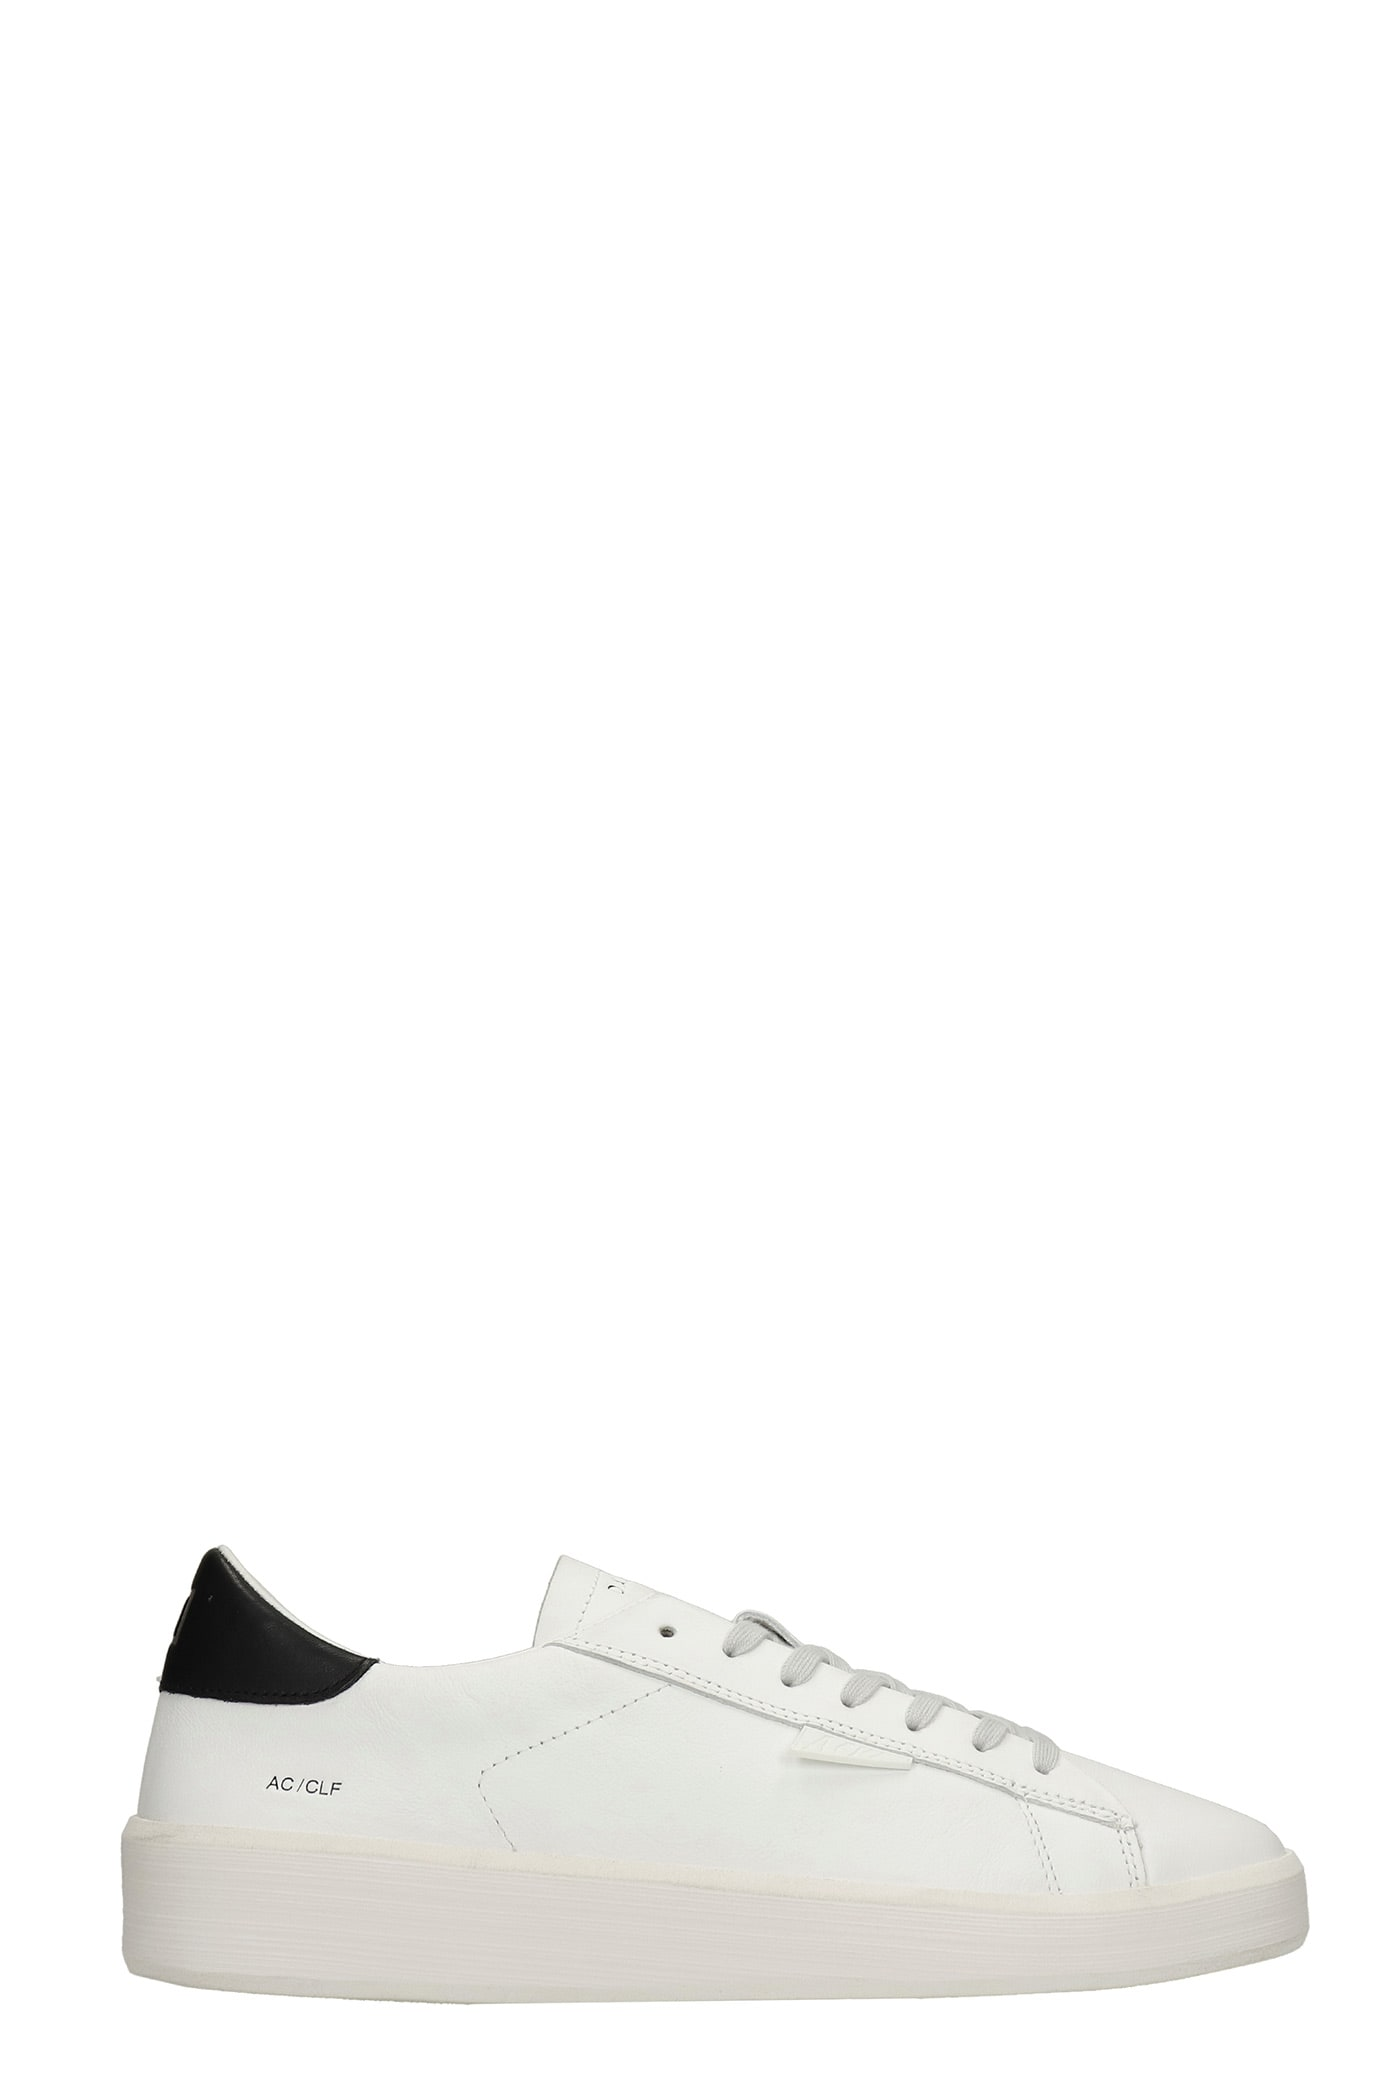 Ace Sneakers In White Leather